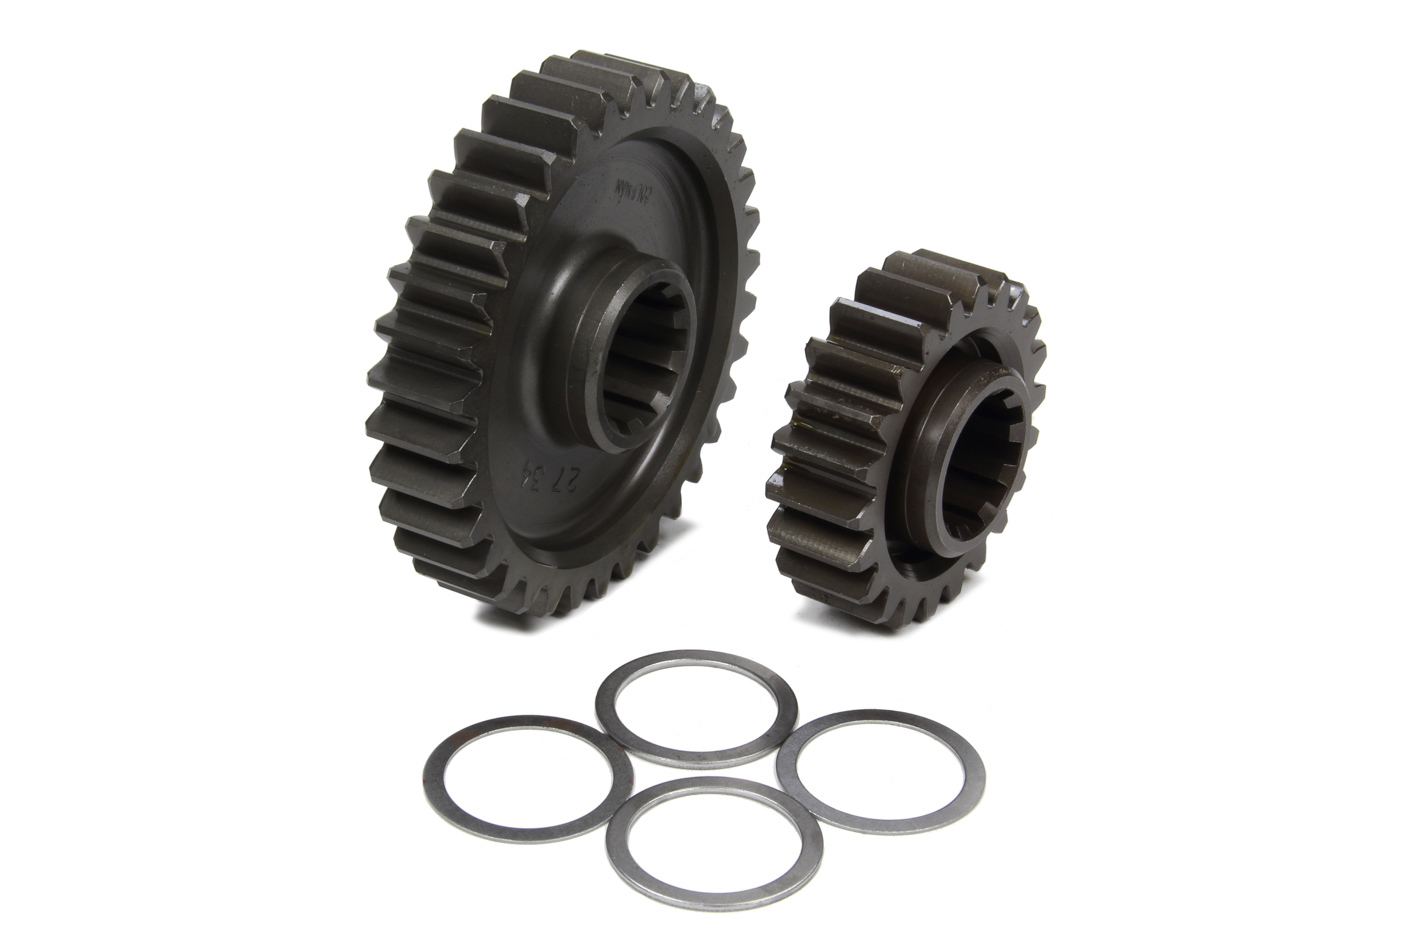 Coleman Machine 207-27 Quick Change Gear Set, Pro-Lite, Set 27, 10 Spline, 4.11 Ratio 6.35 / 2.66, 4.86 Ratio 7.52 / 3.15, Steel, Each